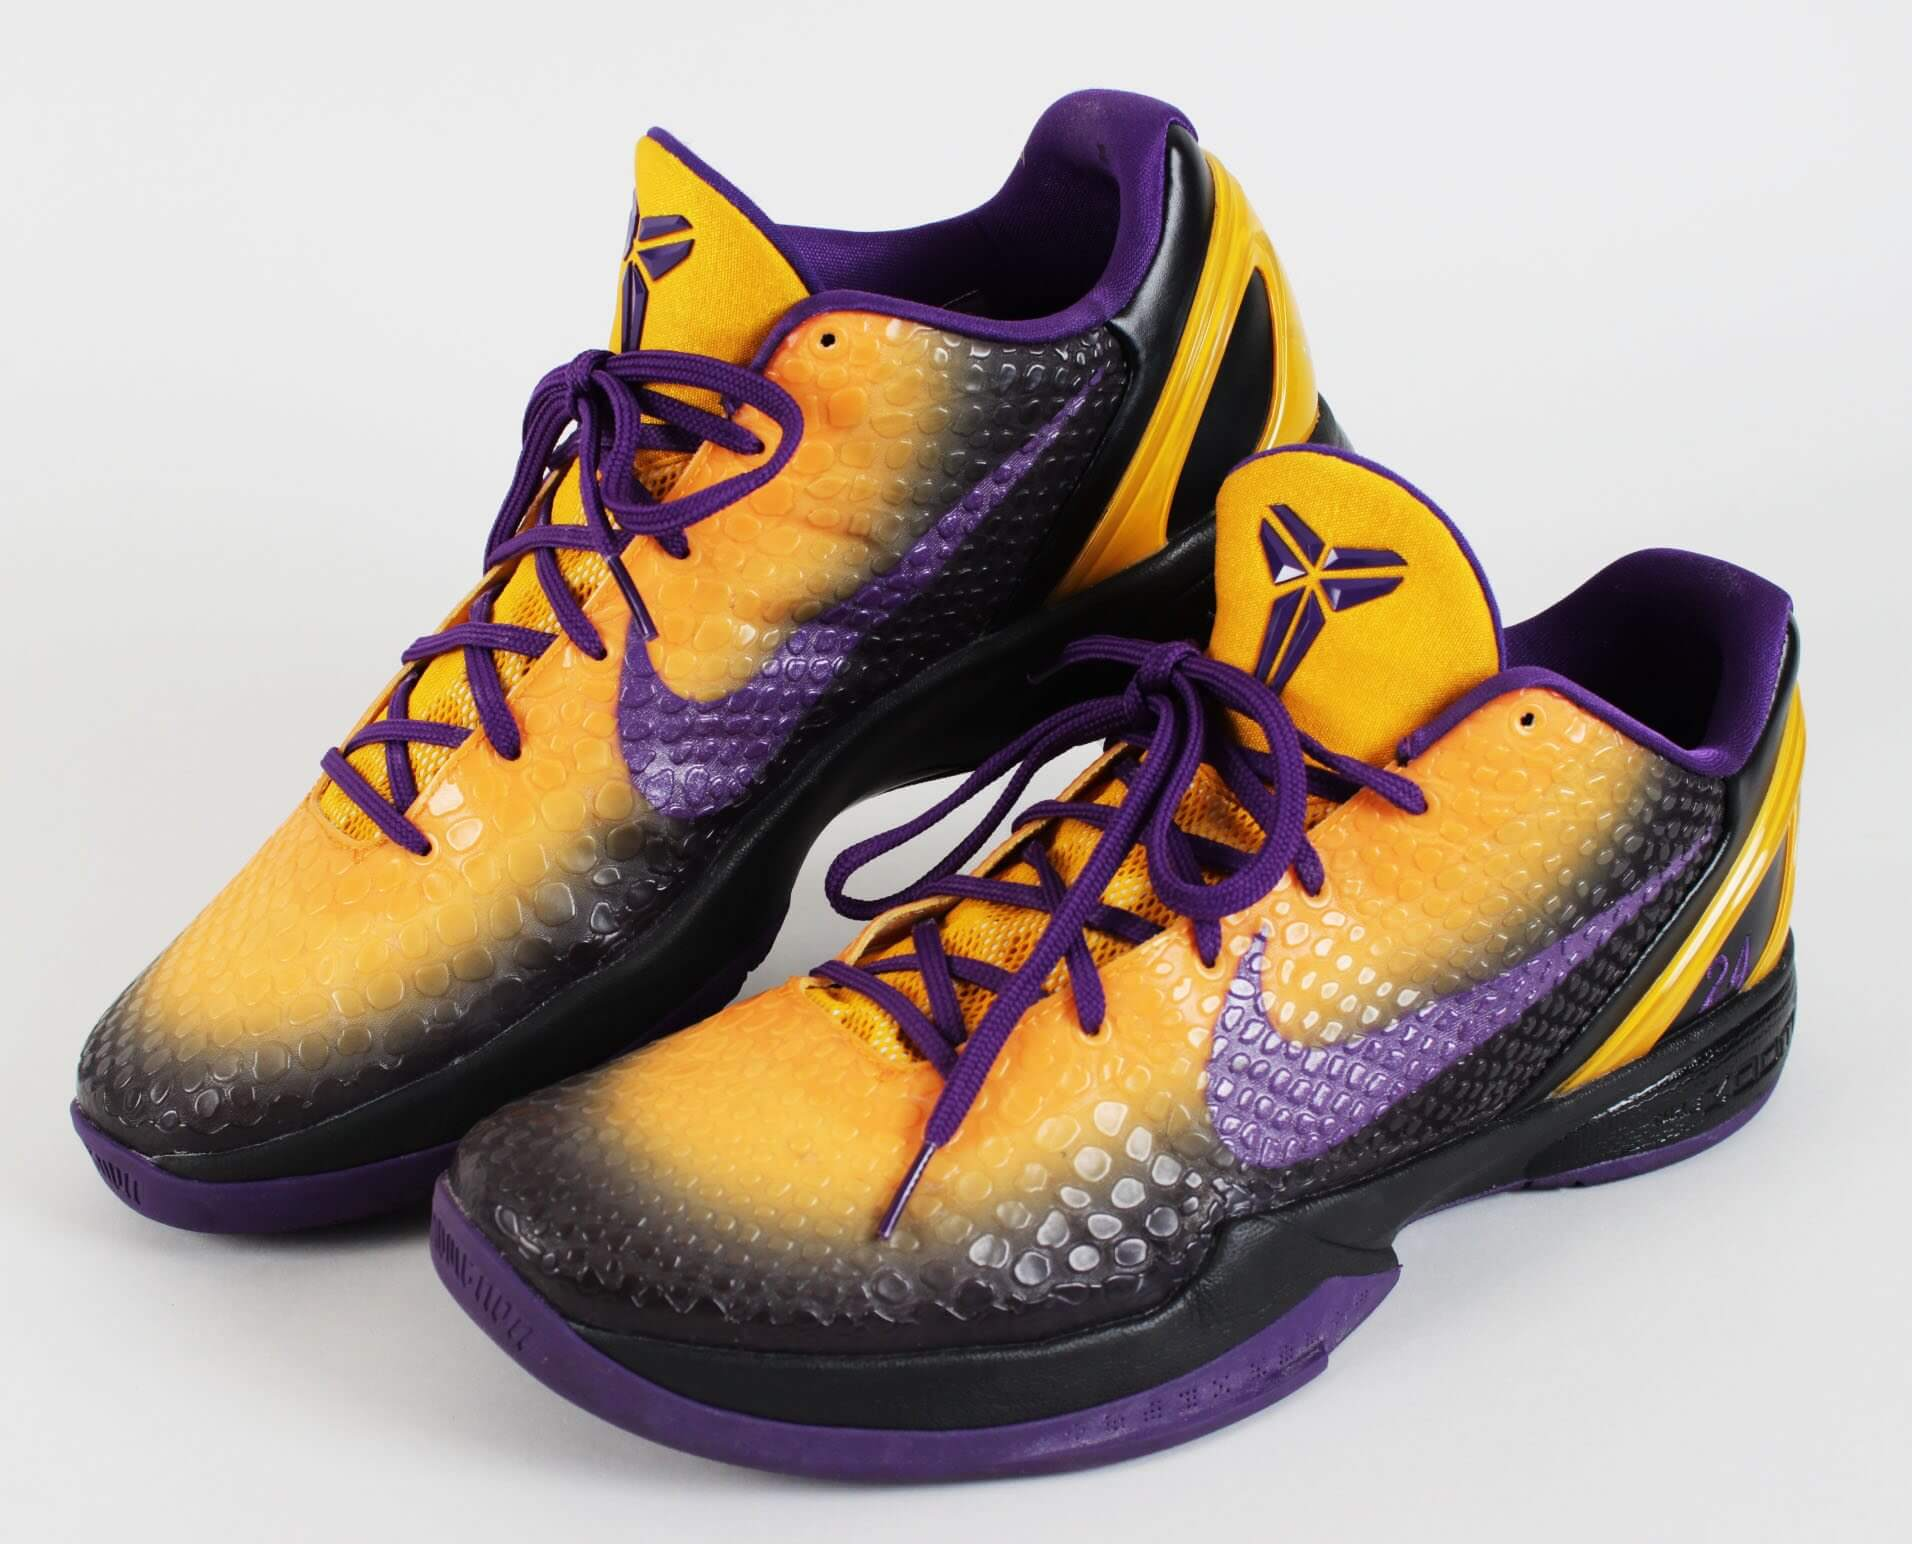 d81c7ae76c46 2010-11 Los Angeles Lakers – Kobe Bryant Worn Shoes Custom Mamba Snake NIKE  iD Zoom VI Sneakers